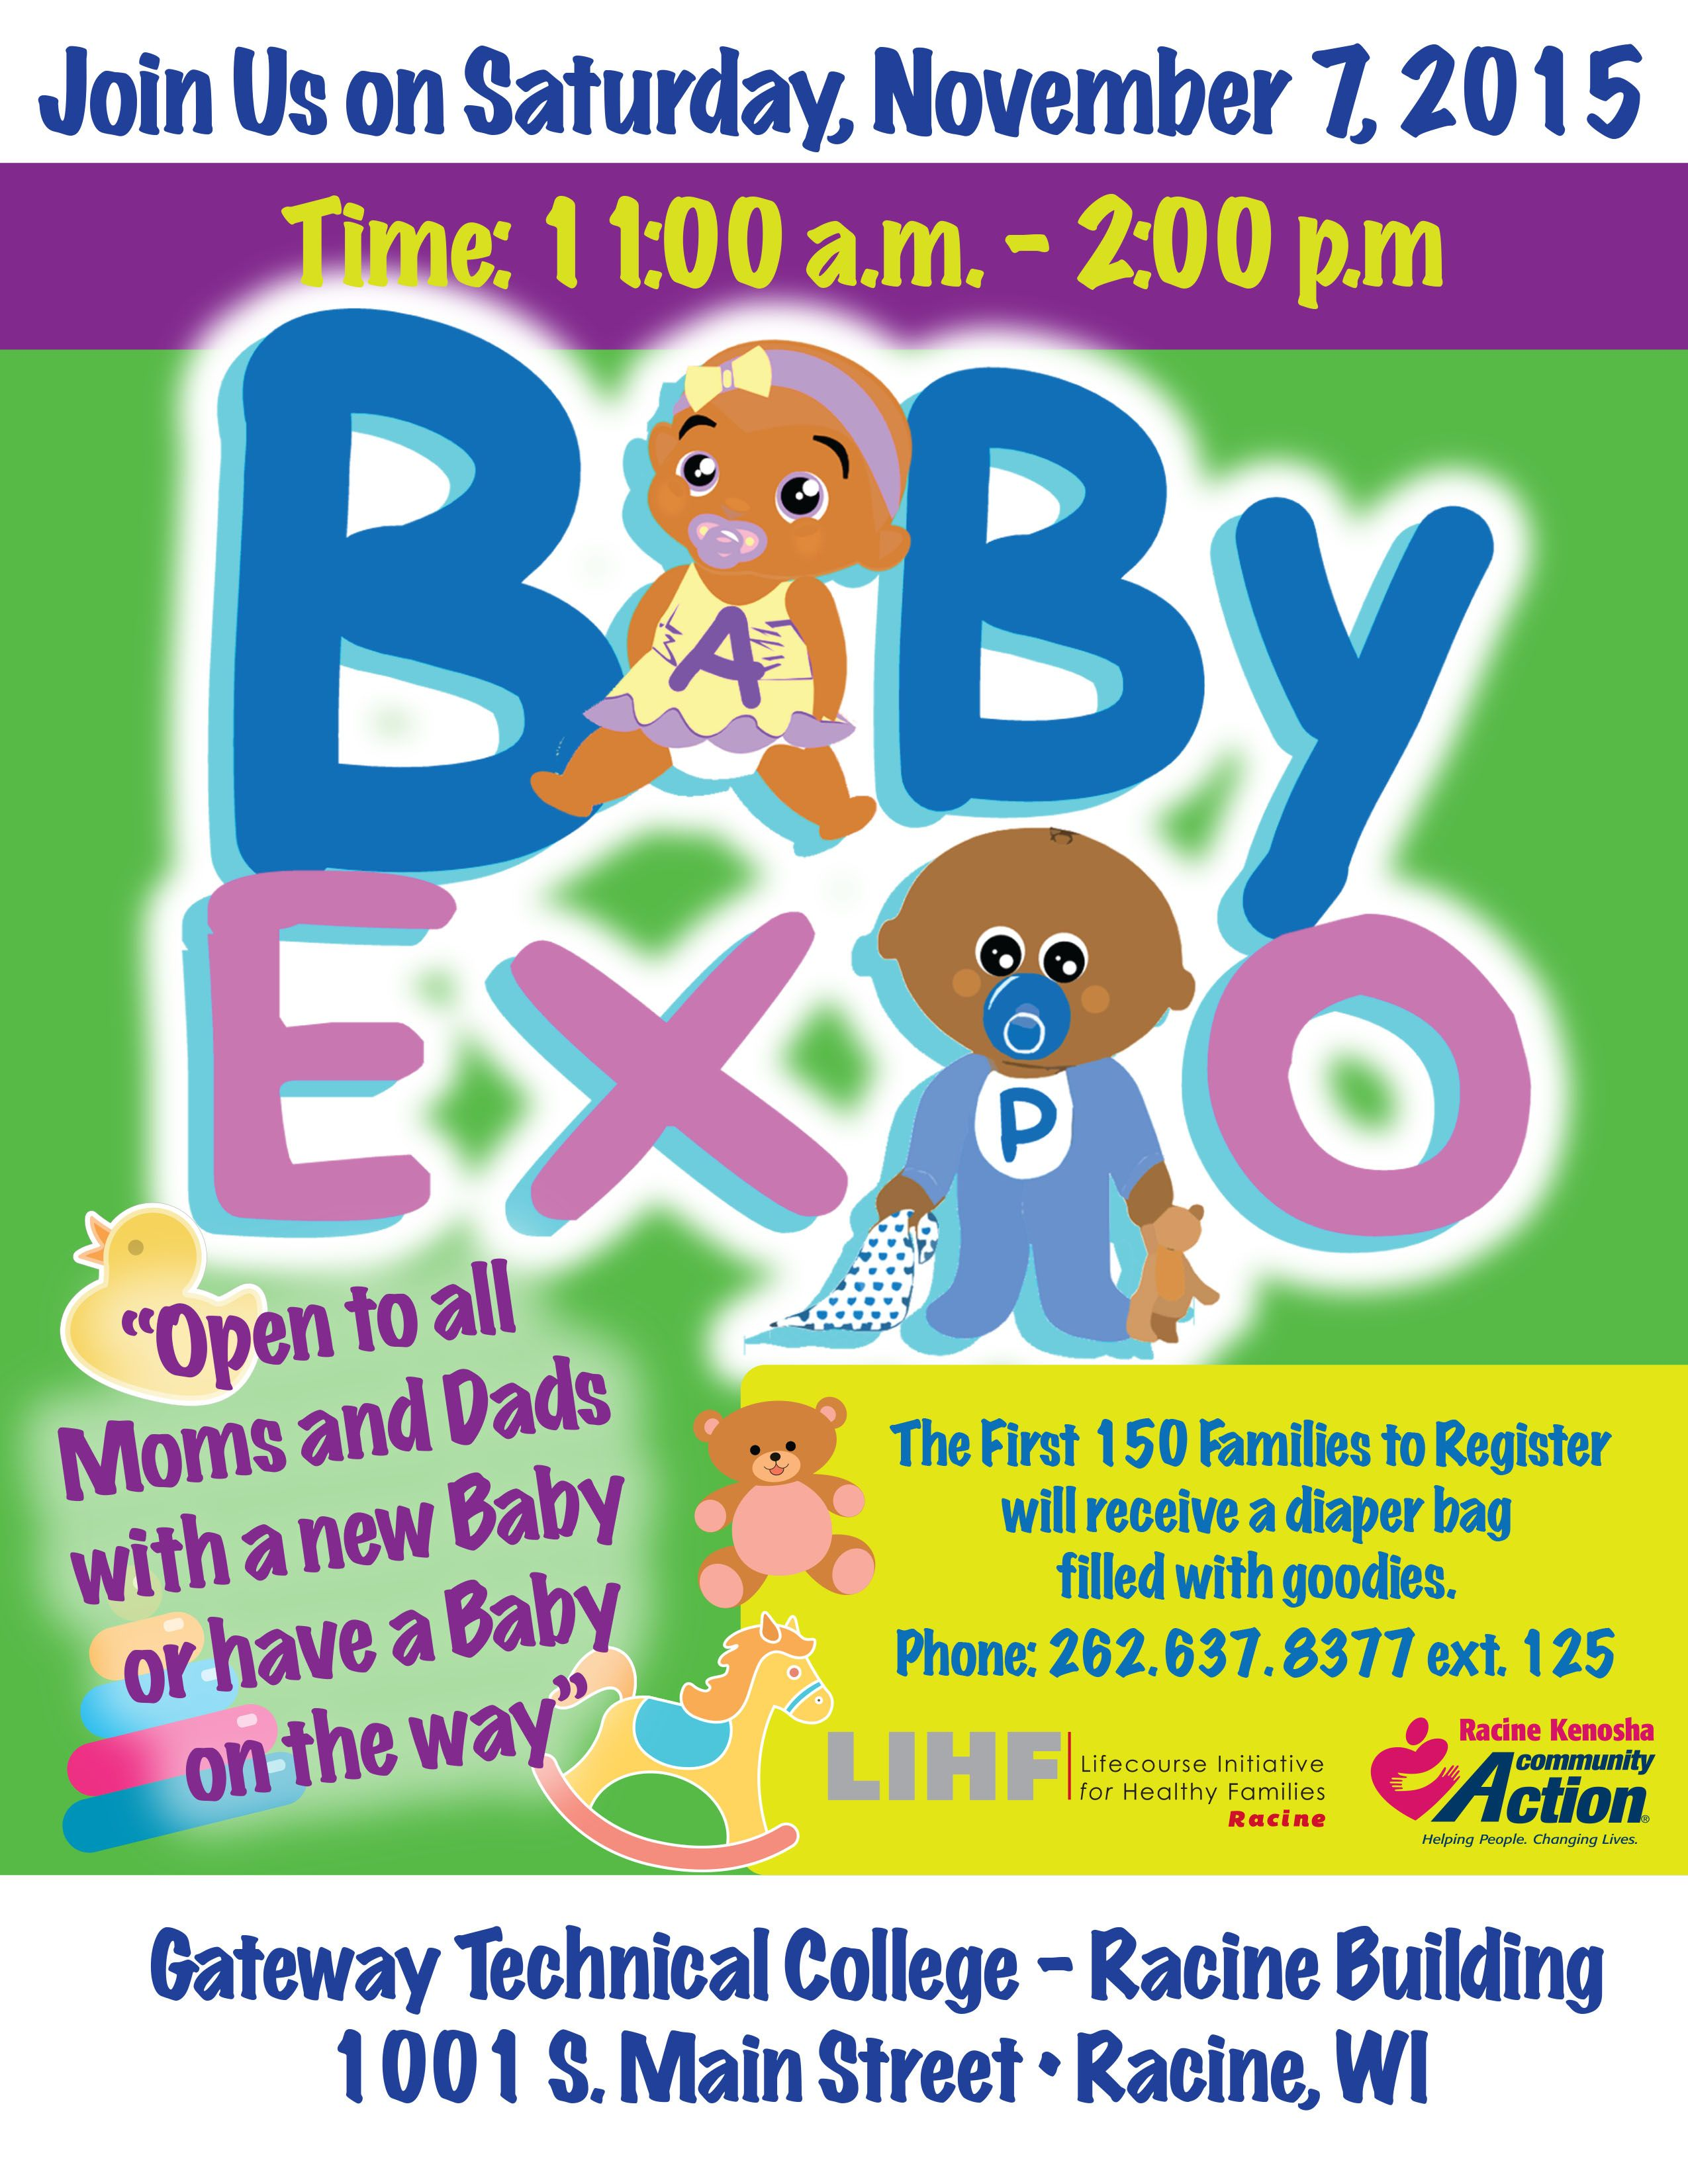 Register today! 150 diaper bags filled with goodies to the